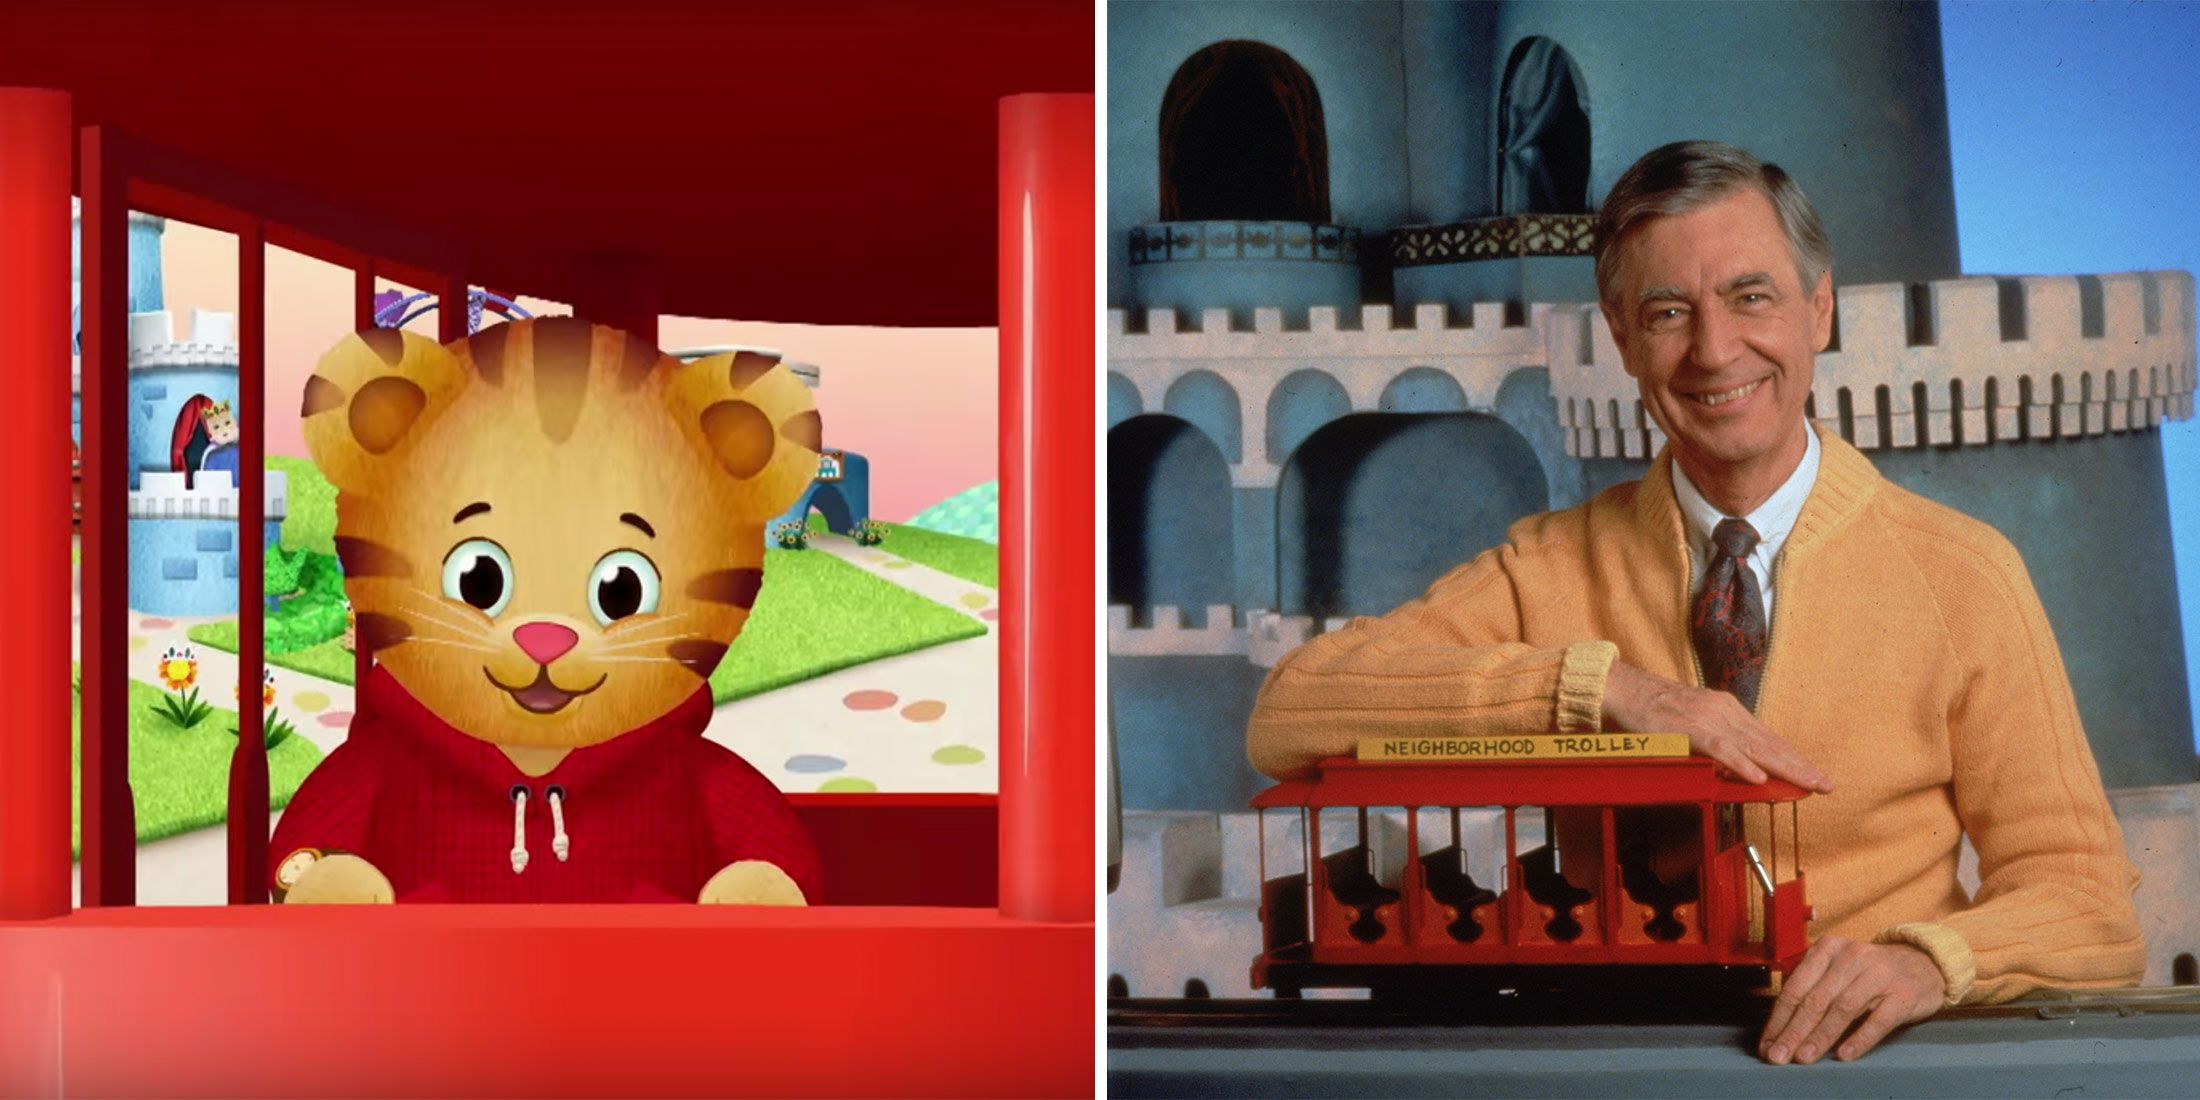 Pbs Kids Is Airing Mister Rogers And Daniel Tiger Double Features All Week